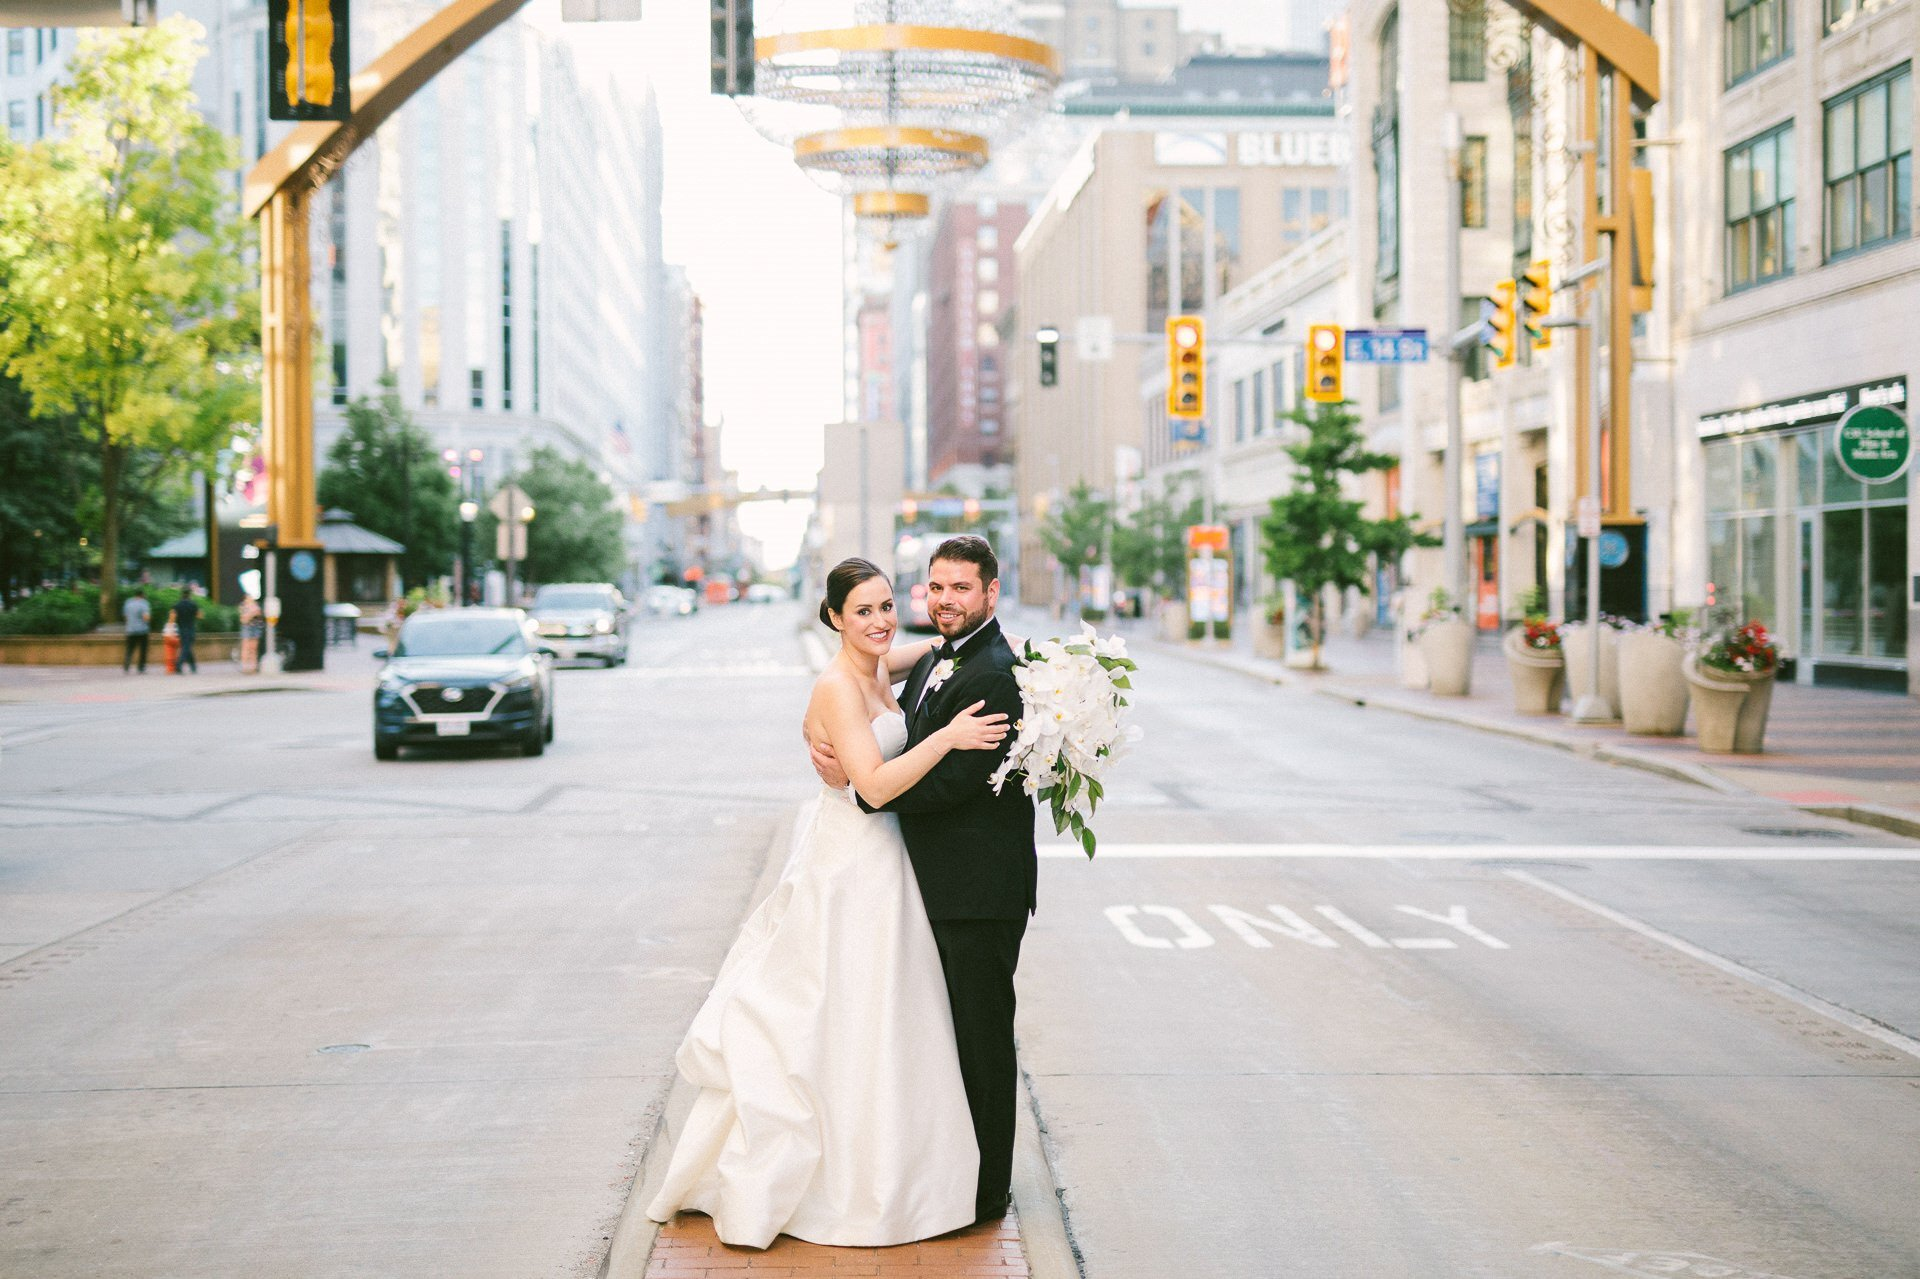 Playhouse State Theater Wedding Photographer in Cleveland 2 16.jpg